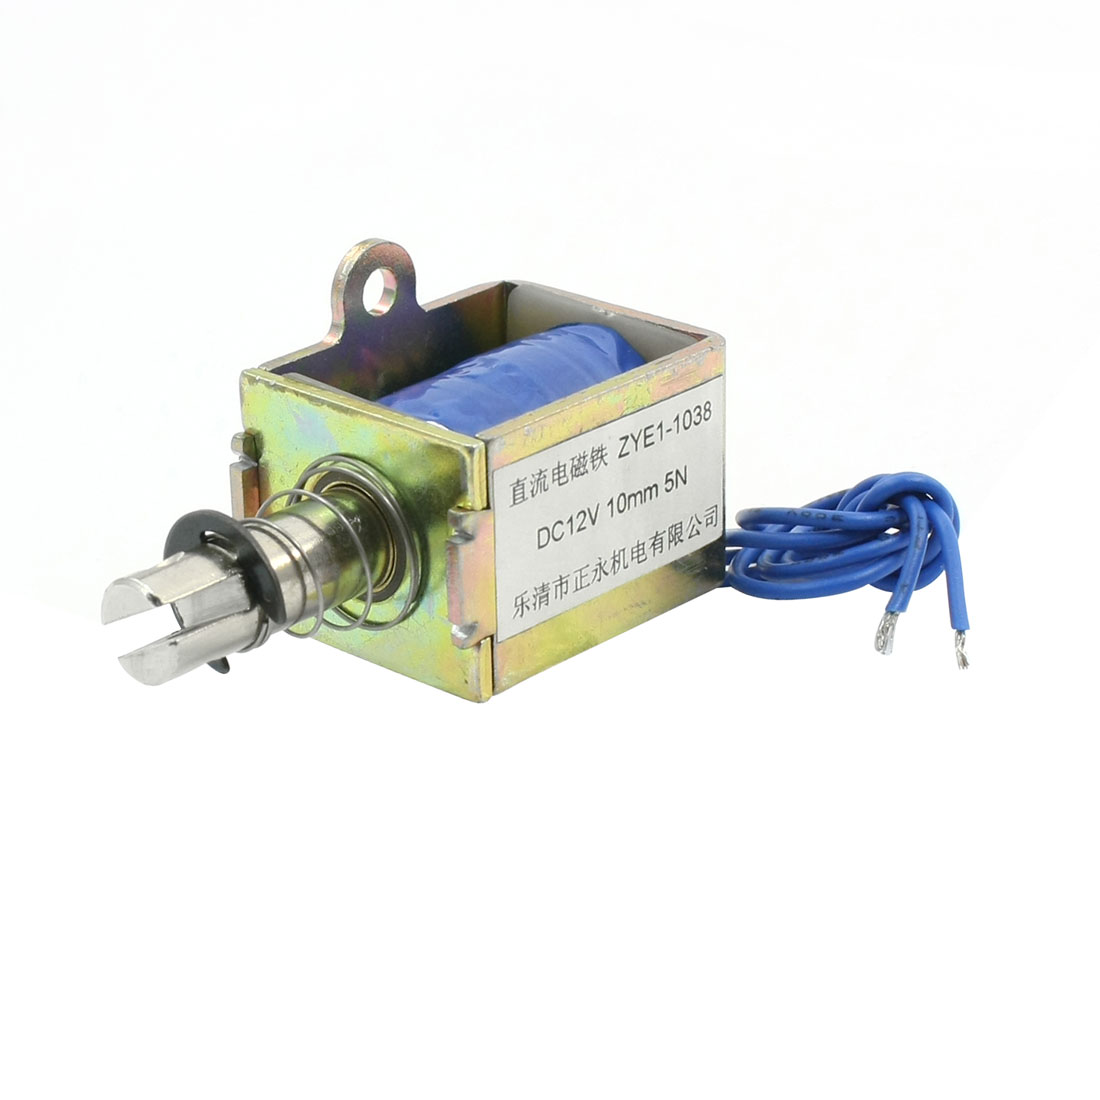 12Volt 5N Force Push Pull Type Open Frame DC Electric Solenoid ZYE1-1038